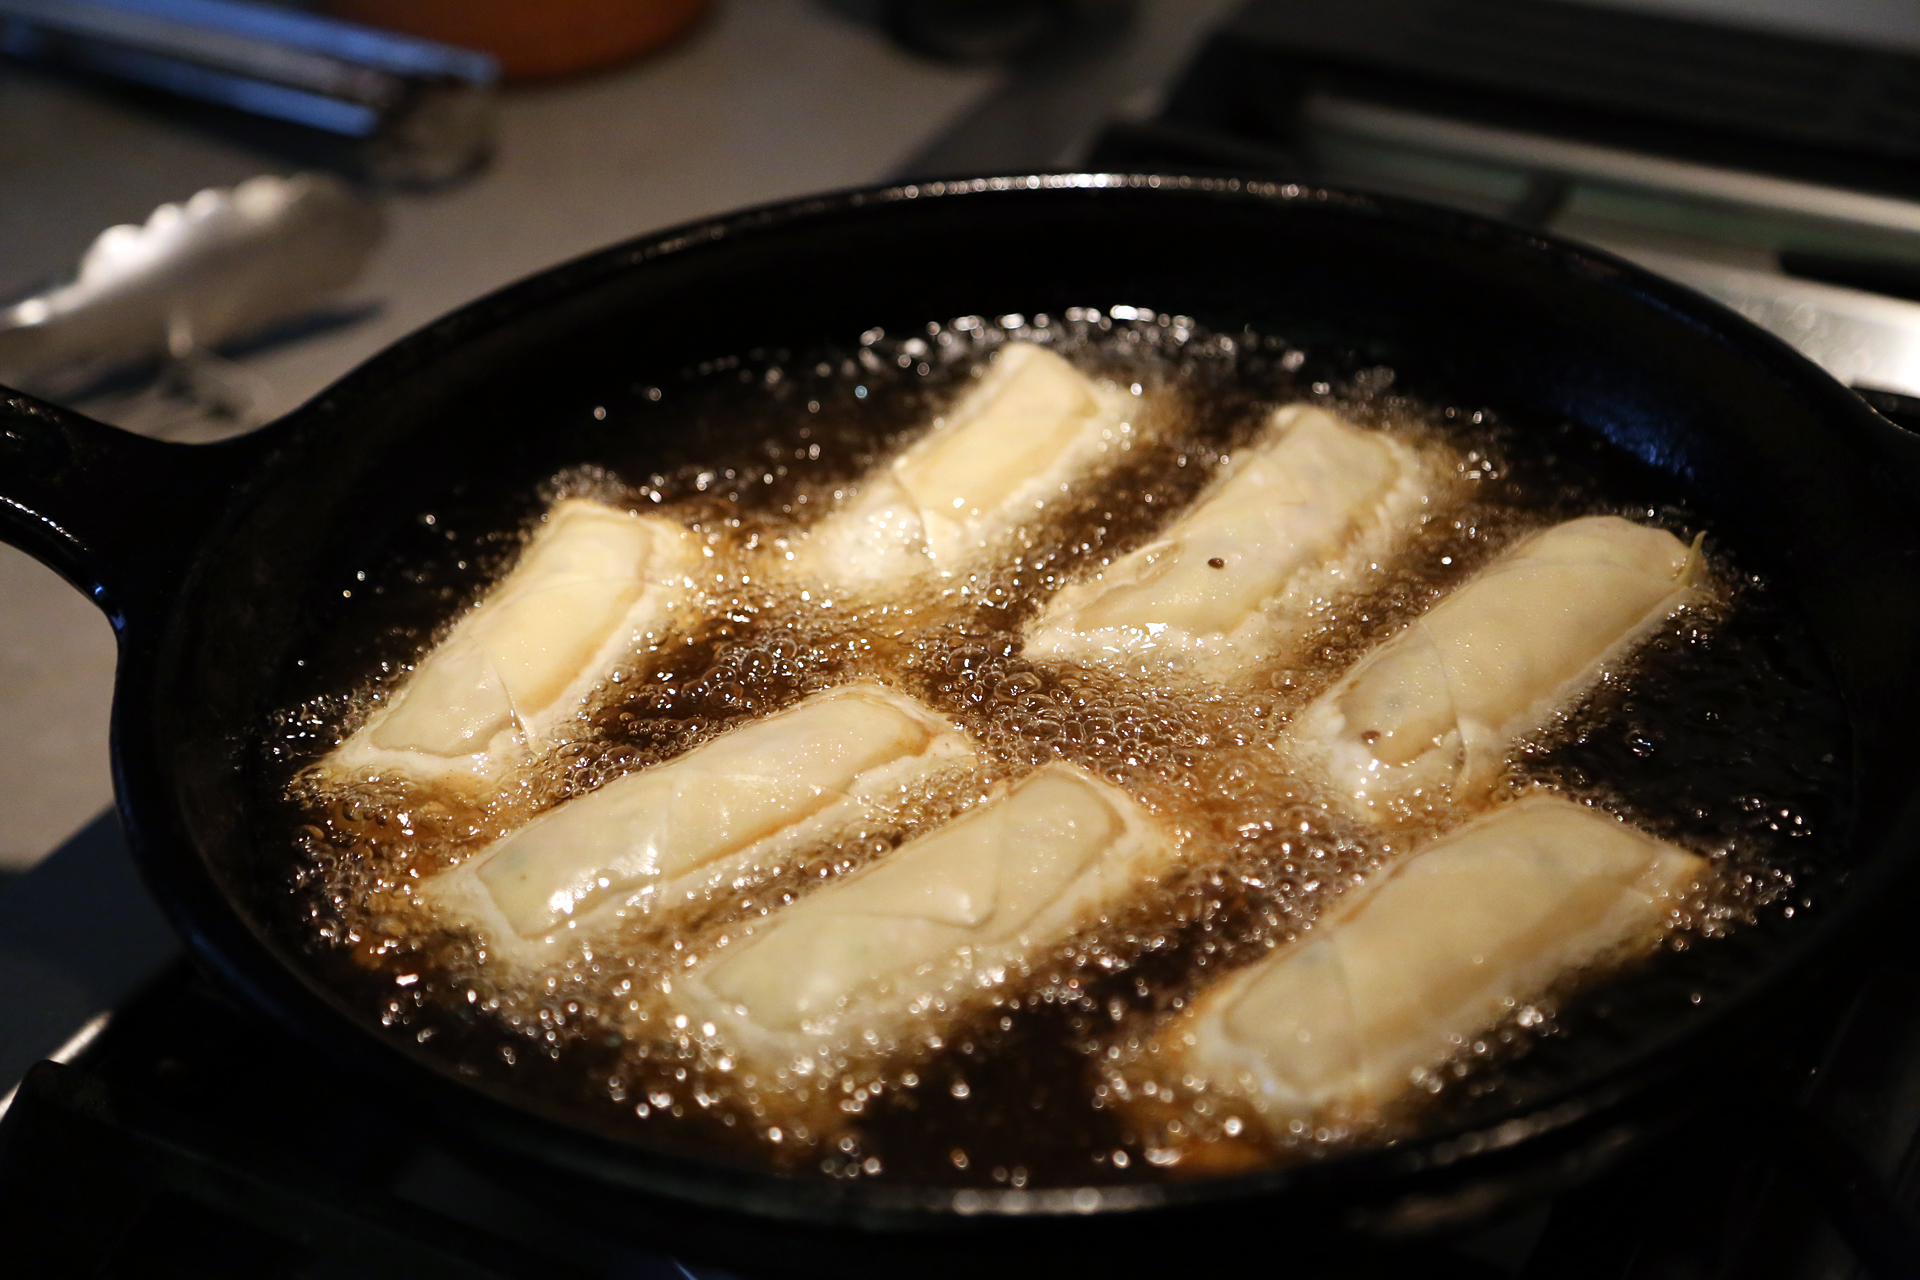 In a large frying pan over medium-high heat, warm 1/3 inch of the oil until shimmering. Fry the egg rolls in batches.